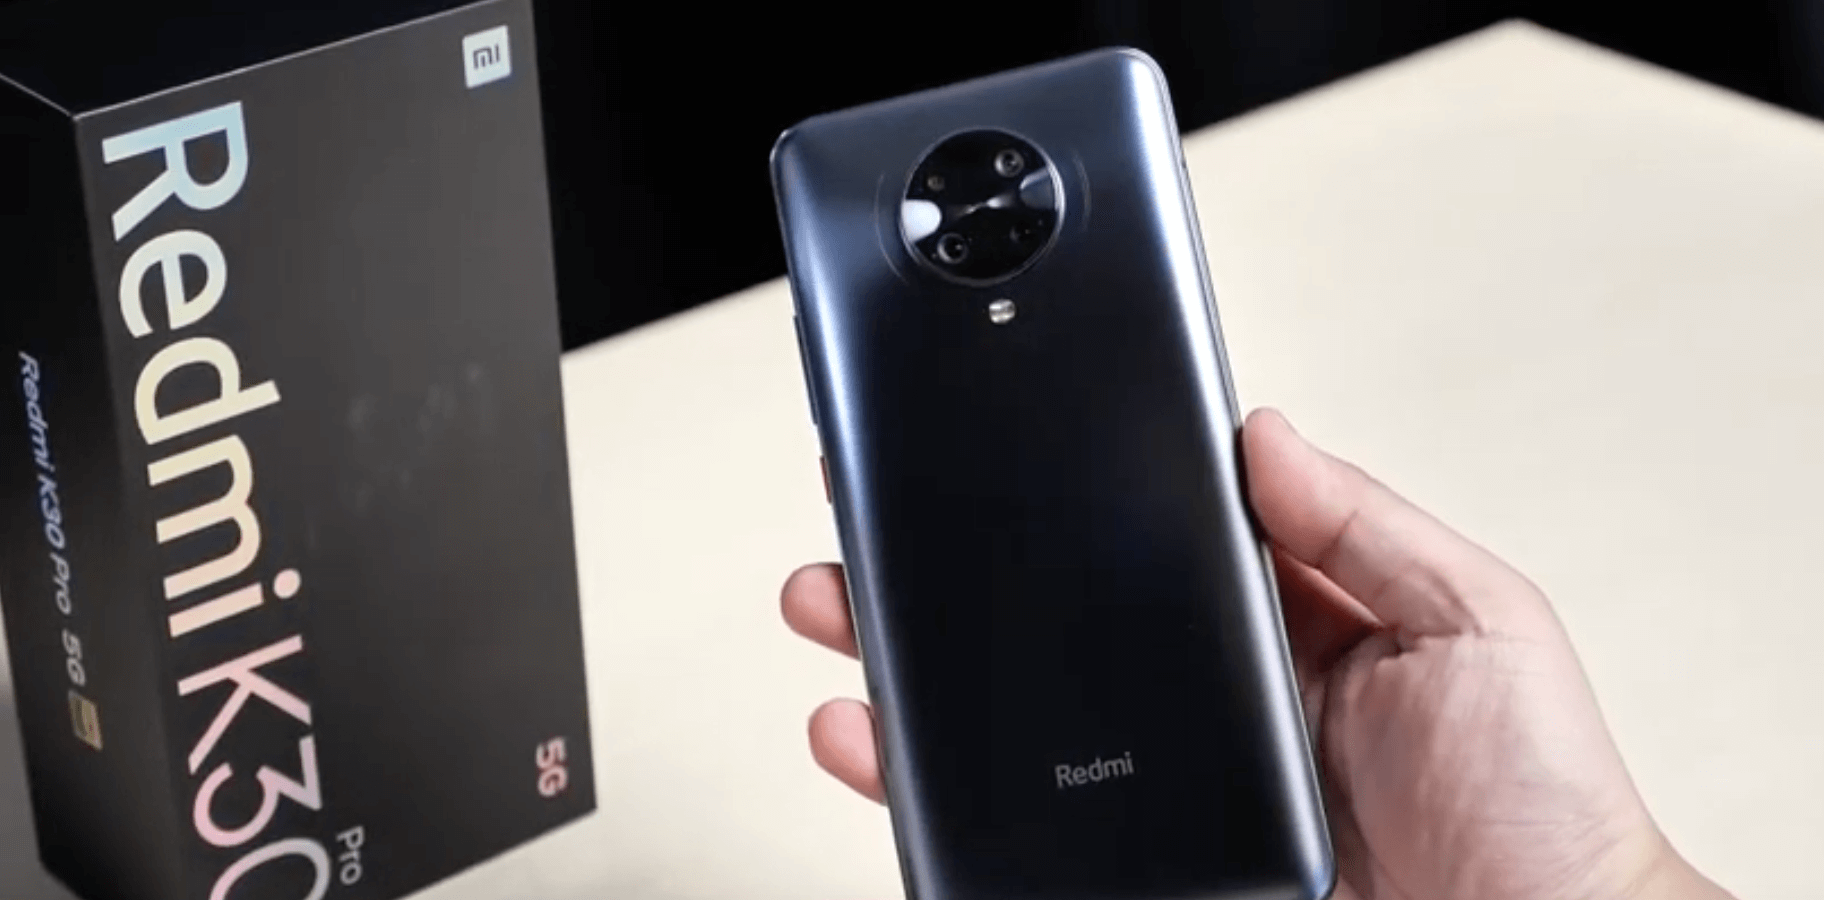 Revisión de Redmi K30 Pro Zoom Edition: un dispositivo rico